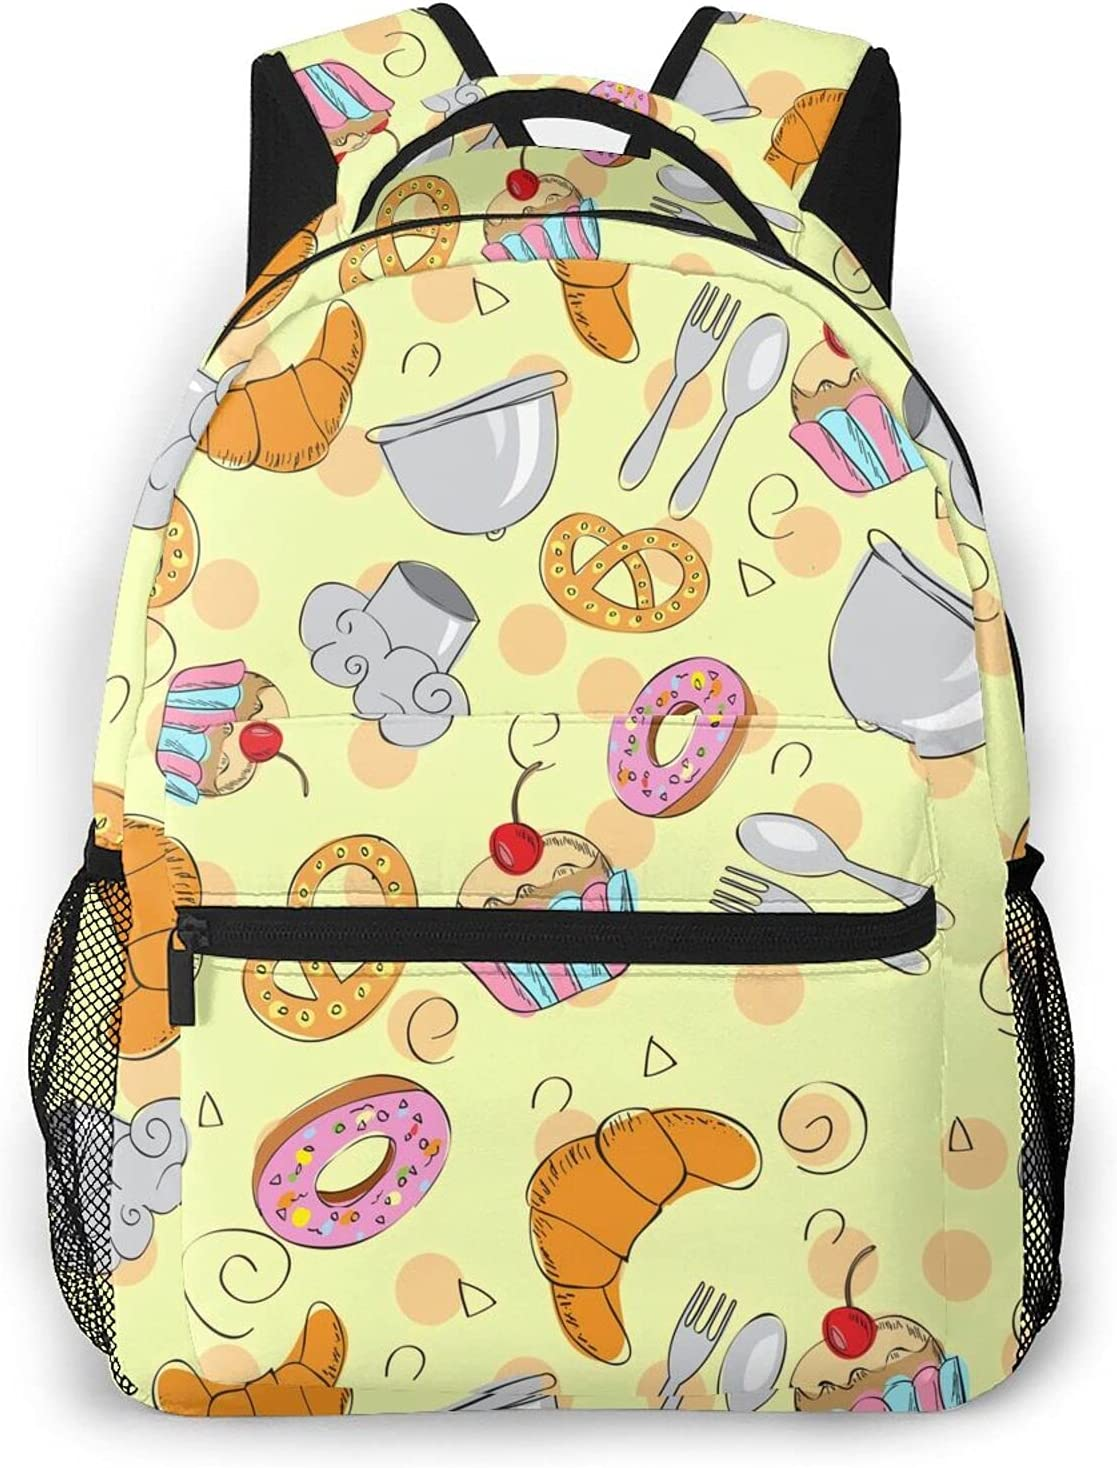 Save money Backpack Unisex Columbus Mall School Bag Delicious Canvas Lapt Sweets Rucksack